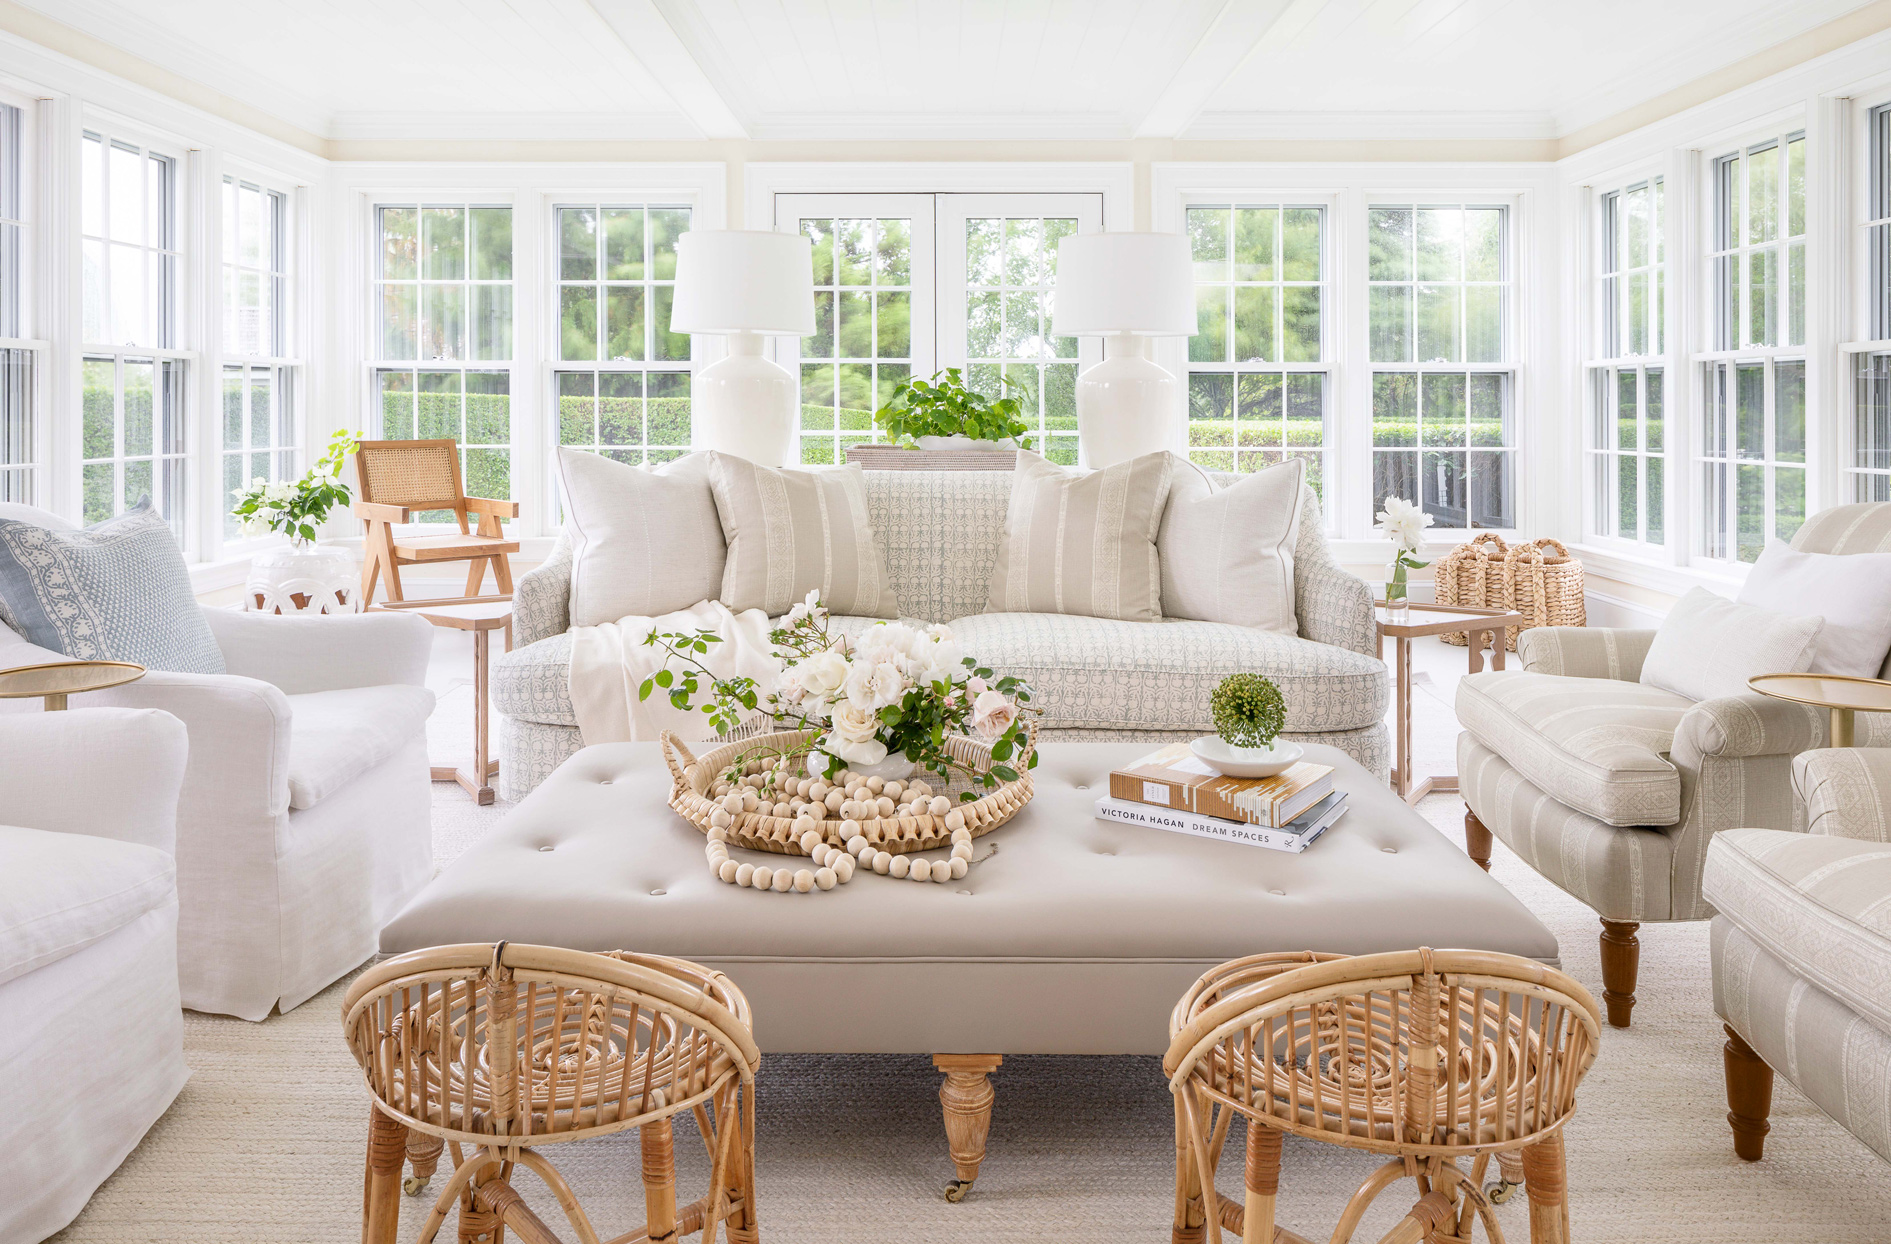 neutral-colored living room with greenery accents